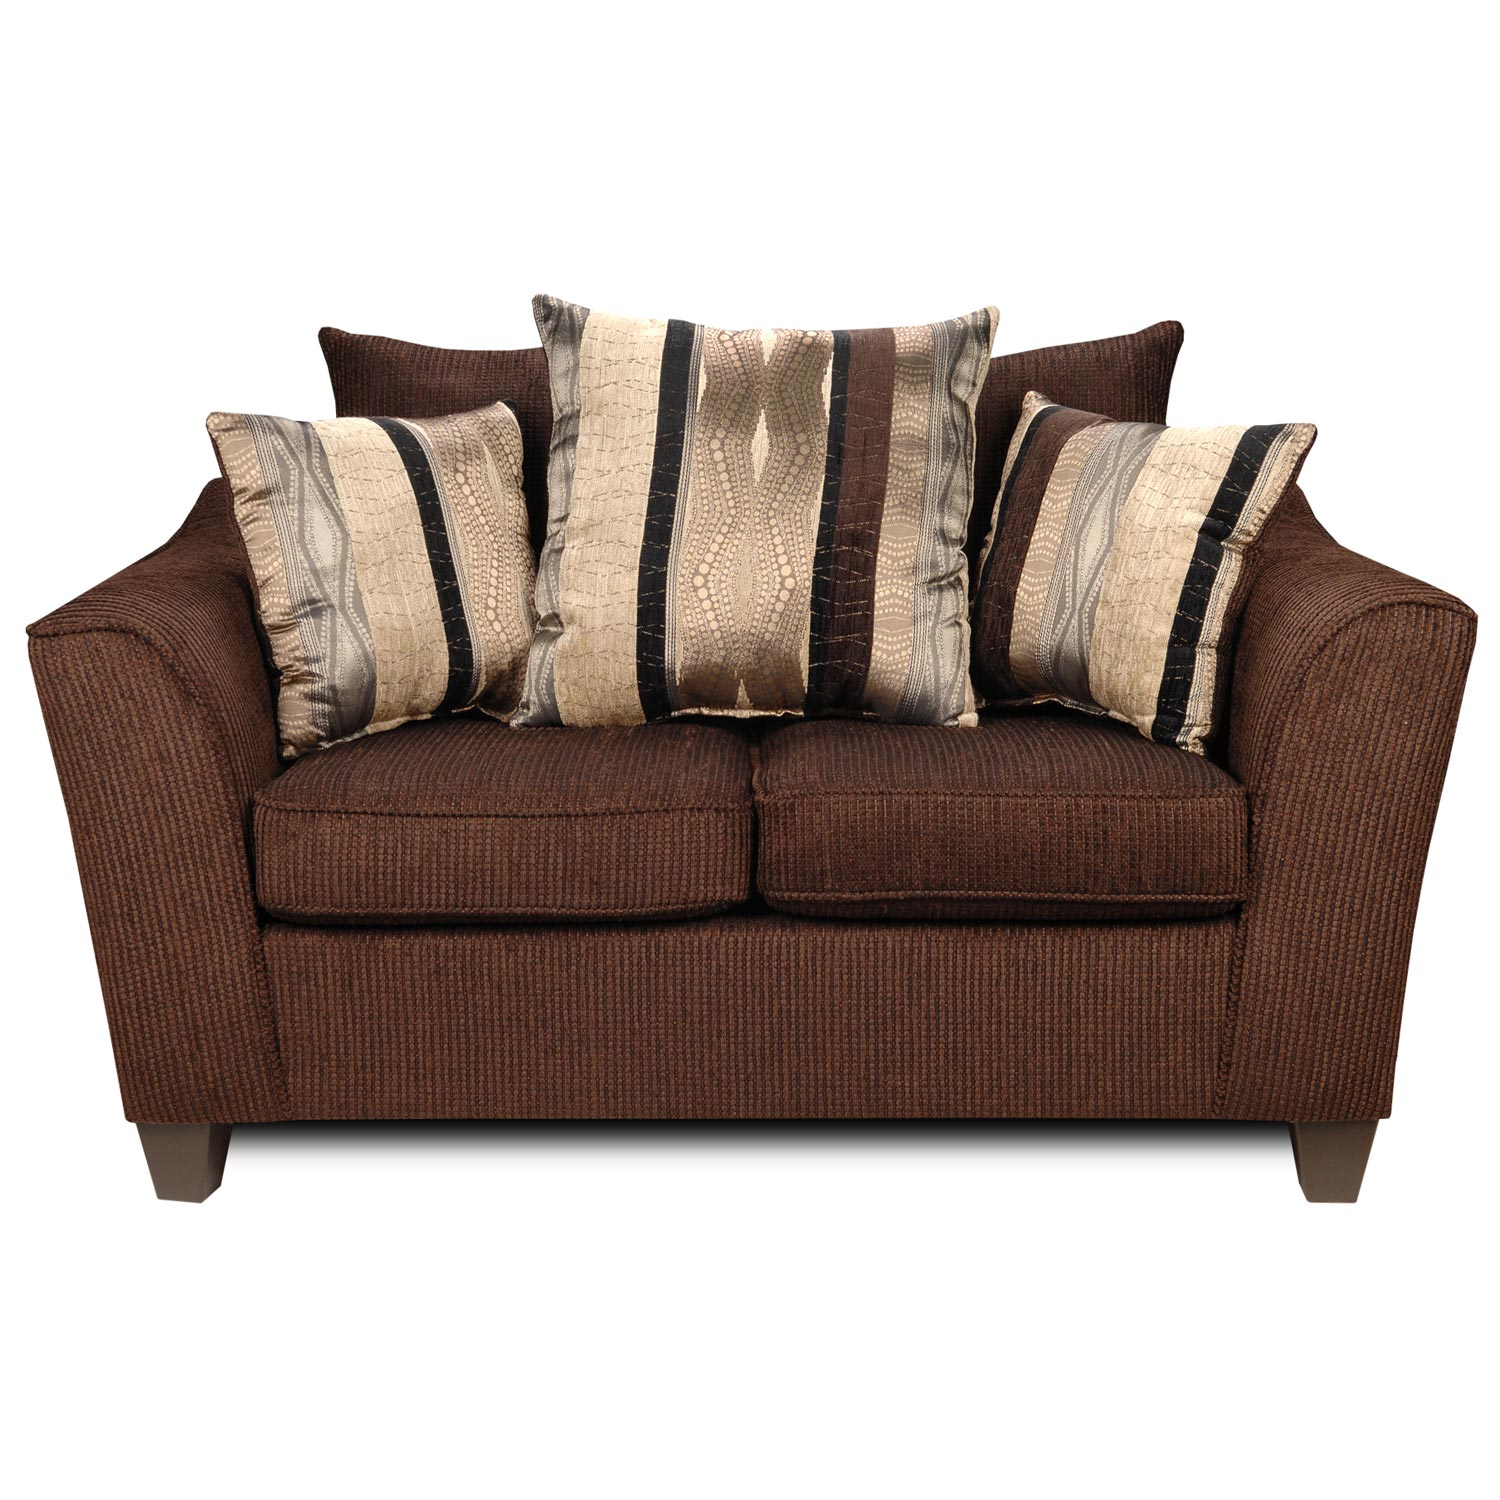 Lizzy Flared Arm Loveseat Pillow Back Romance Brown Fabric Dcg Stores